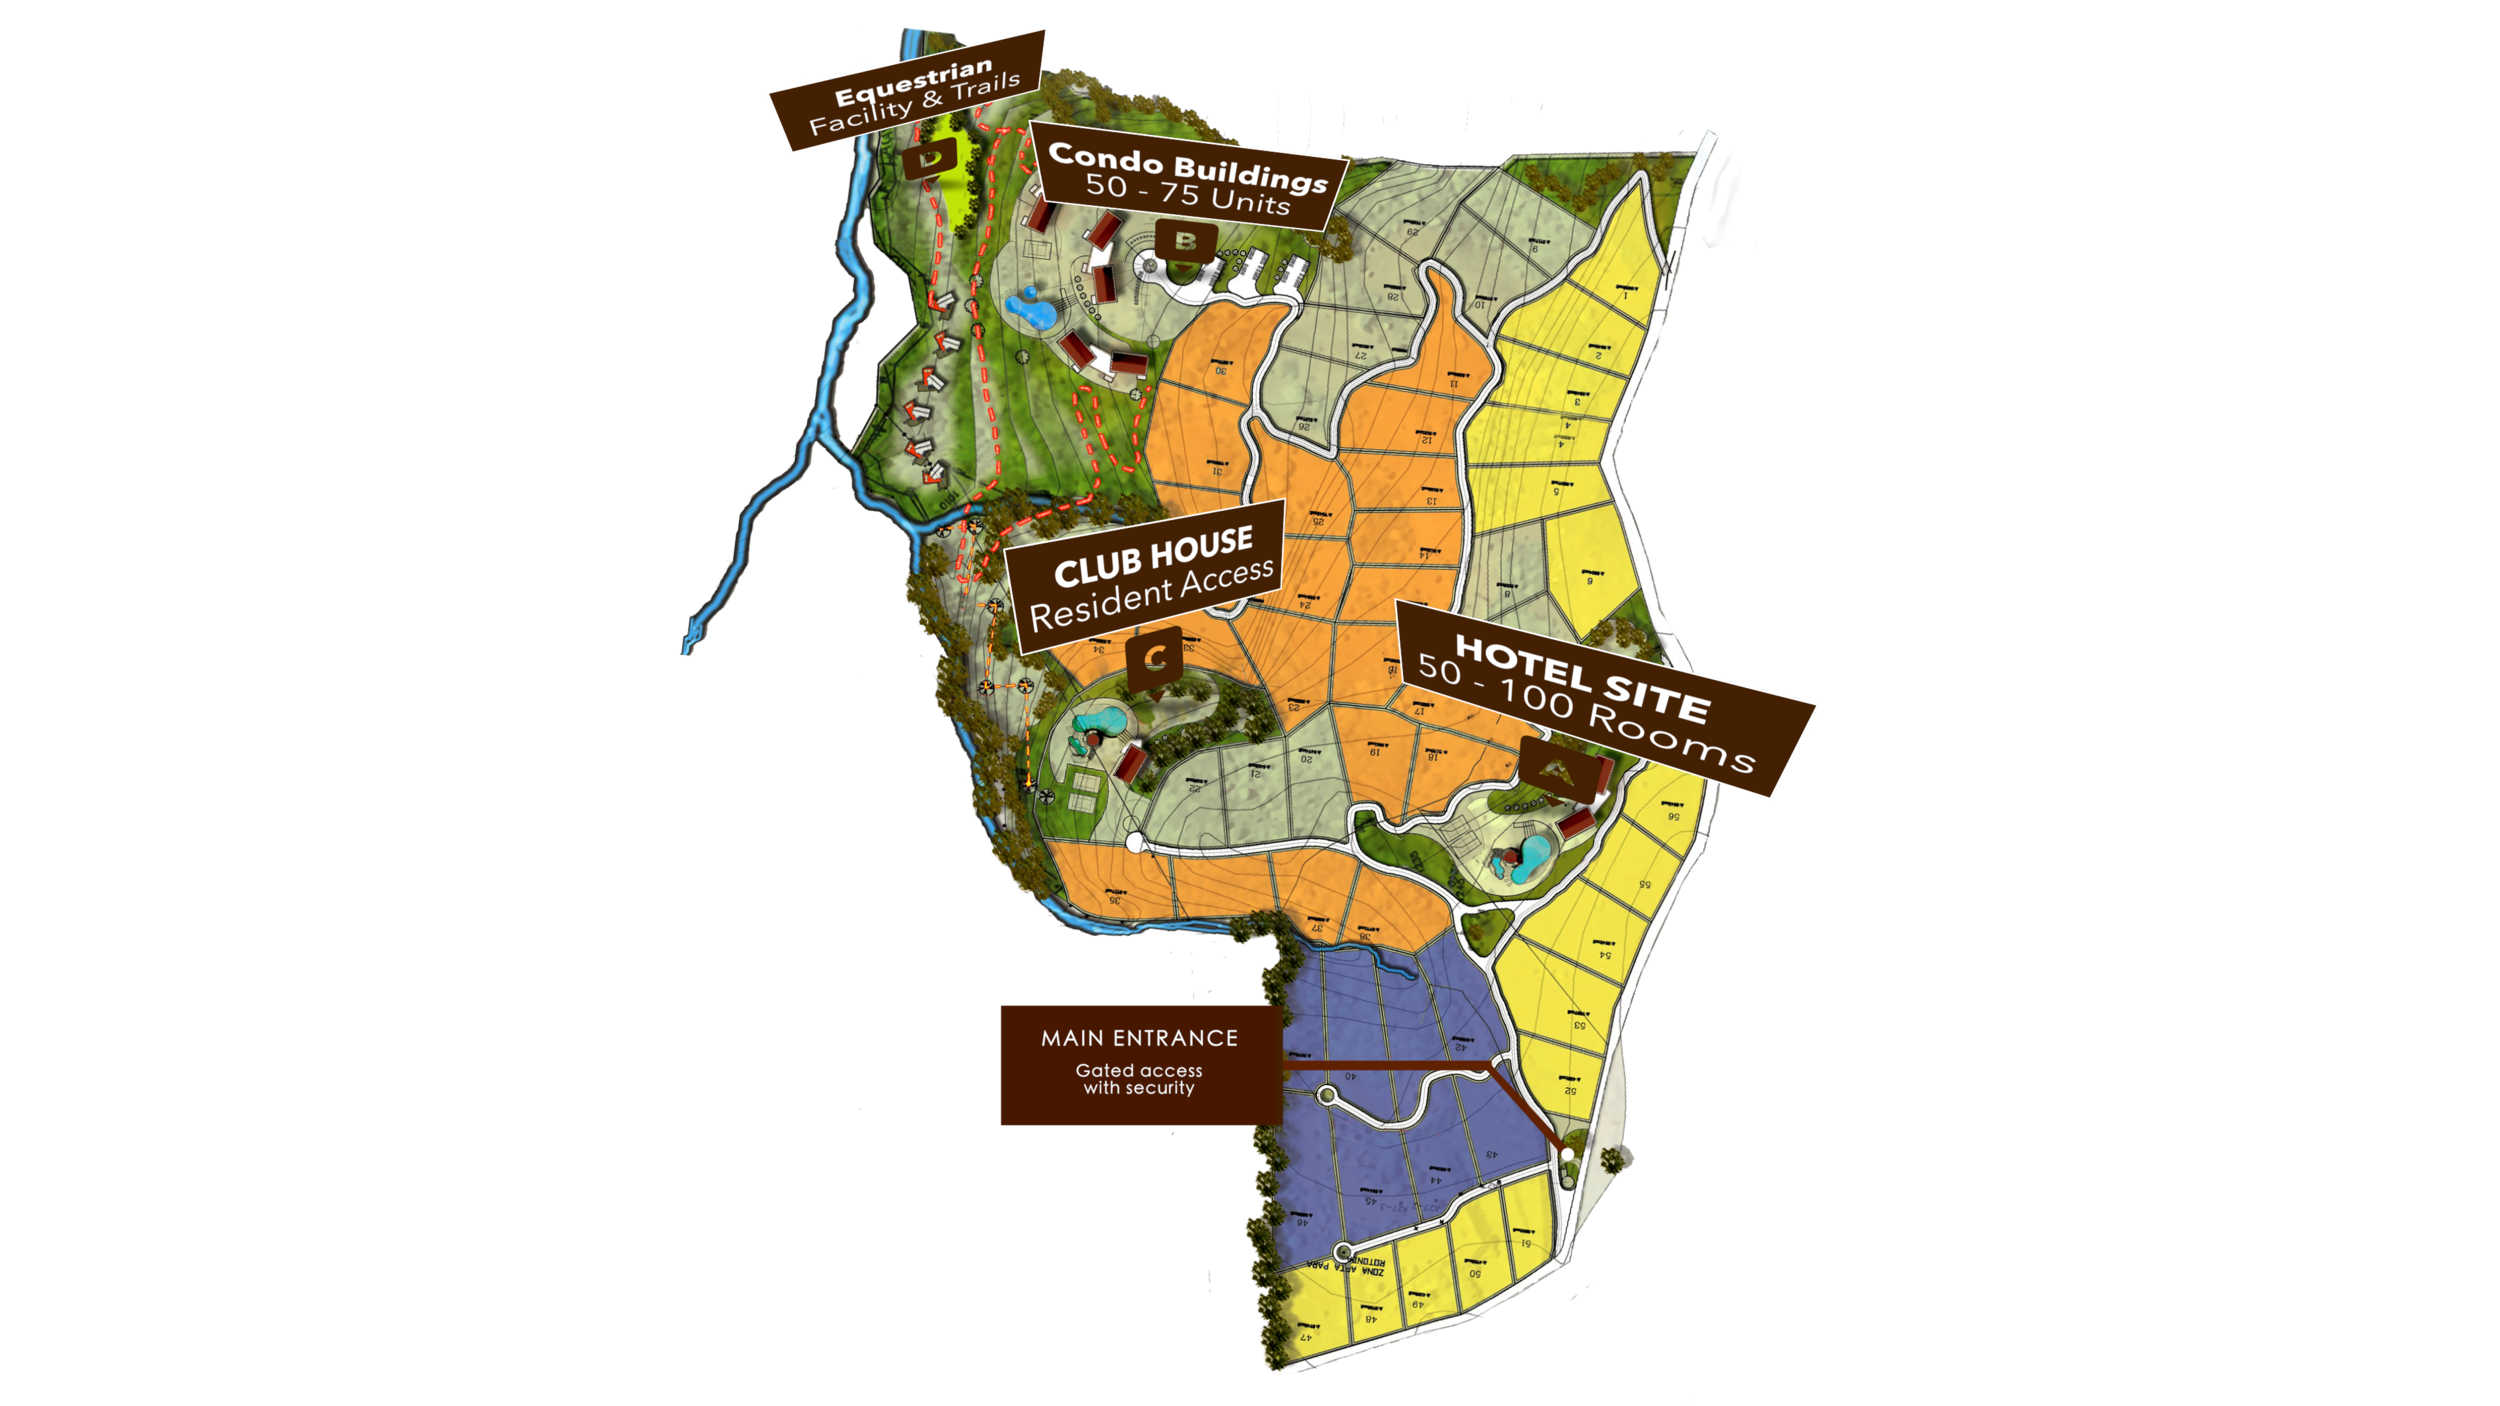 Master Site Plan Developed by Nagel Architects 2014